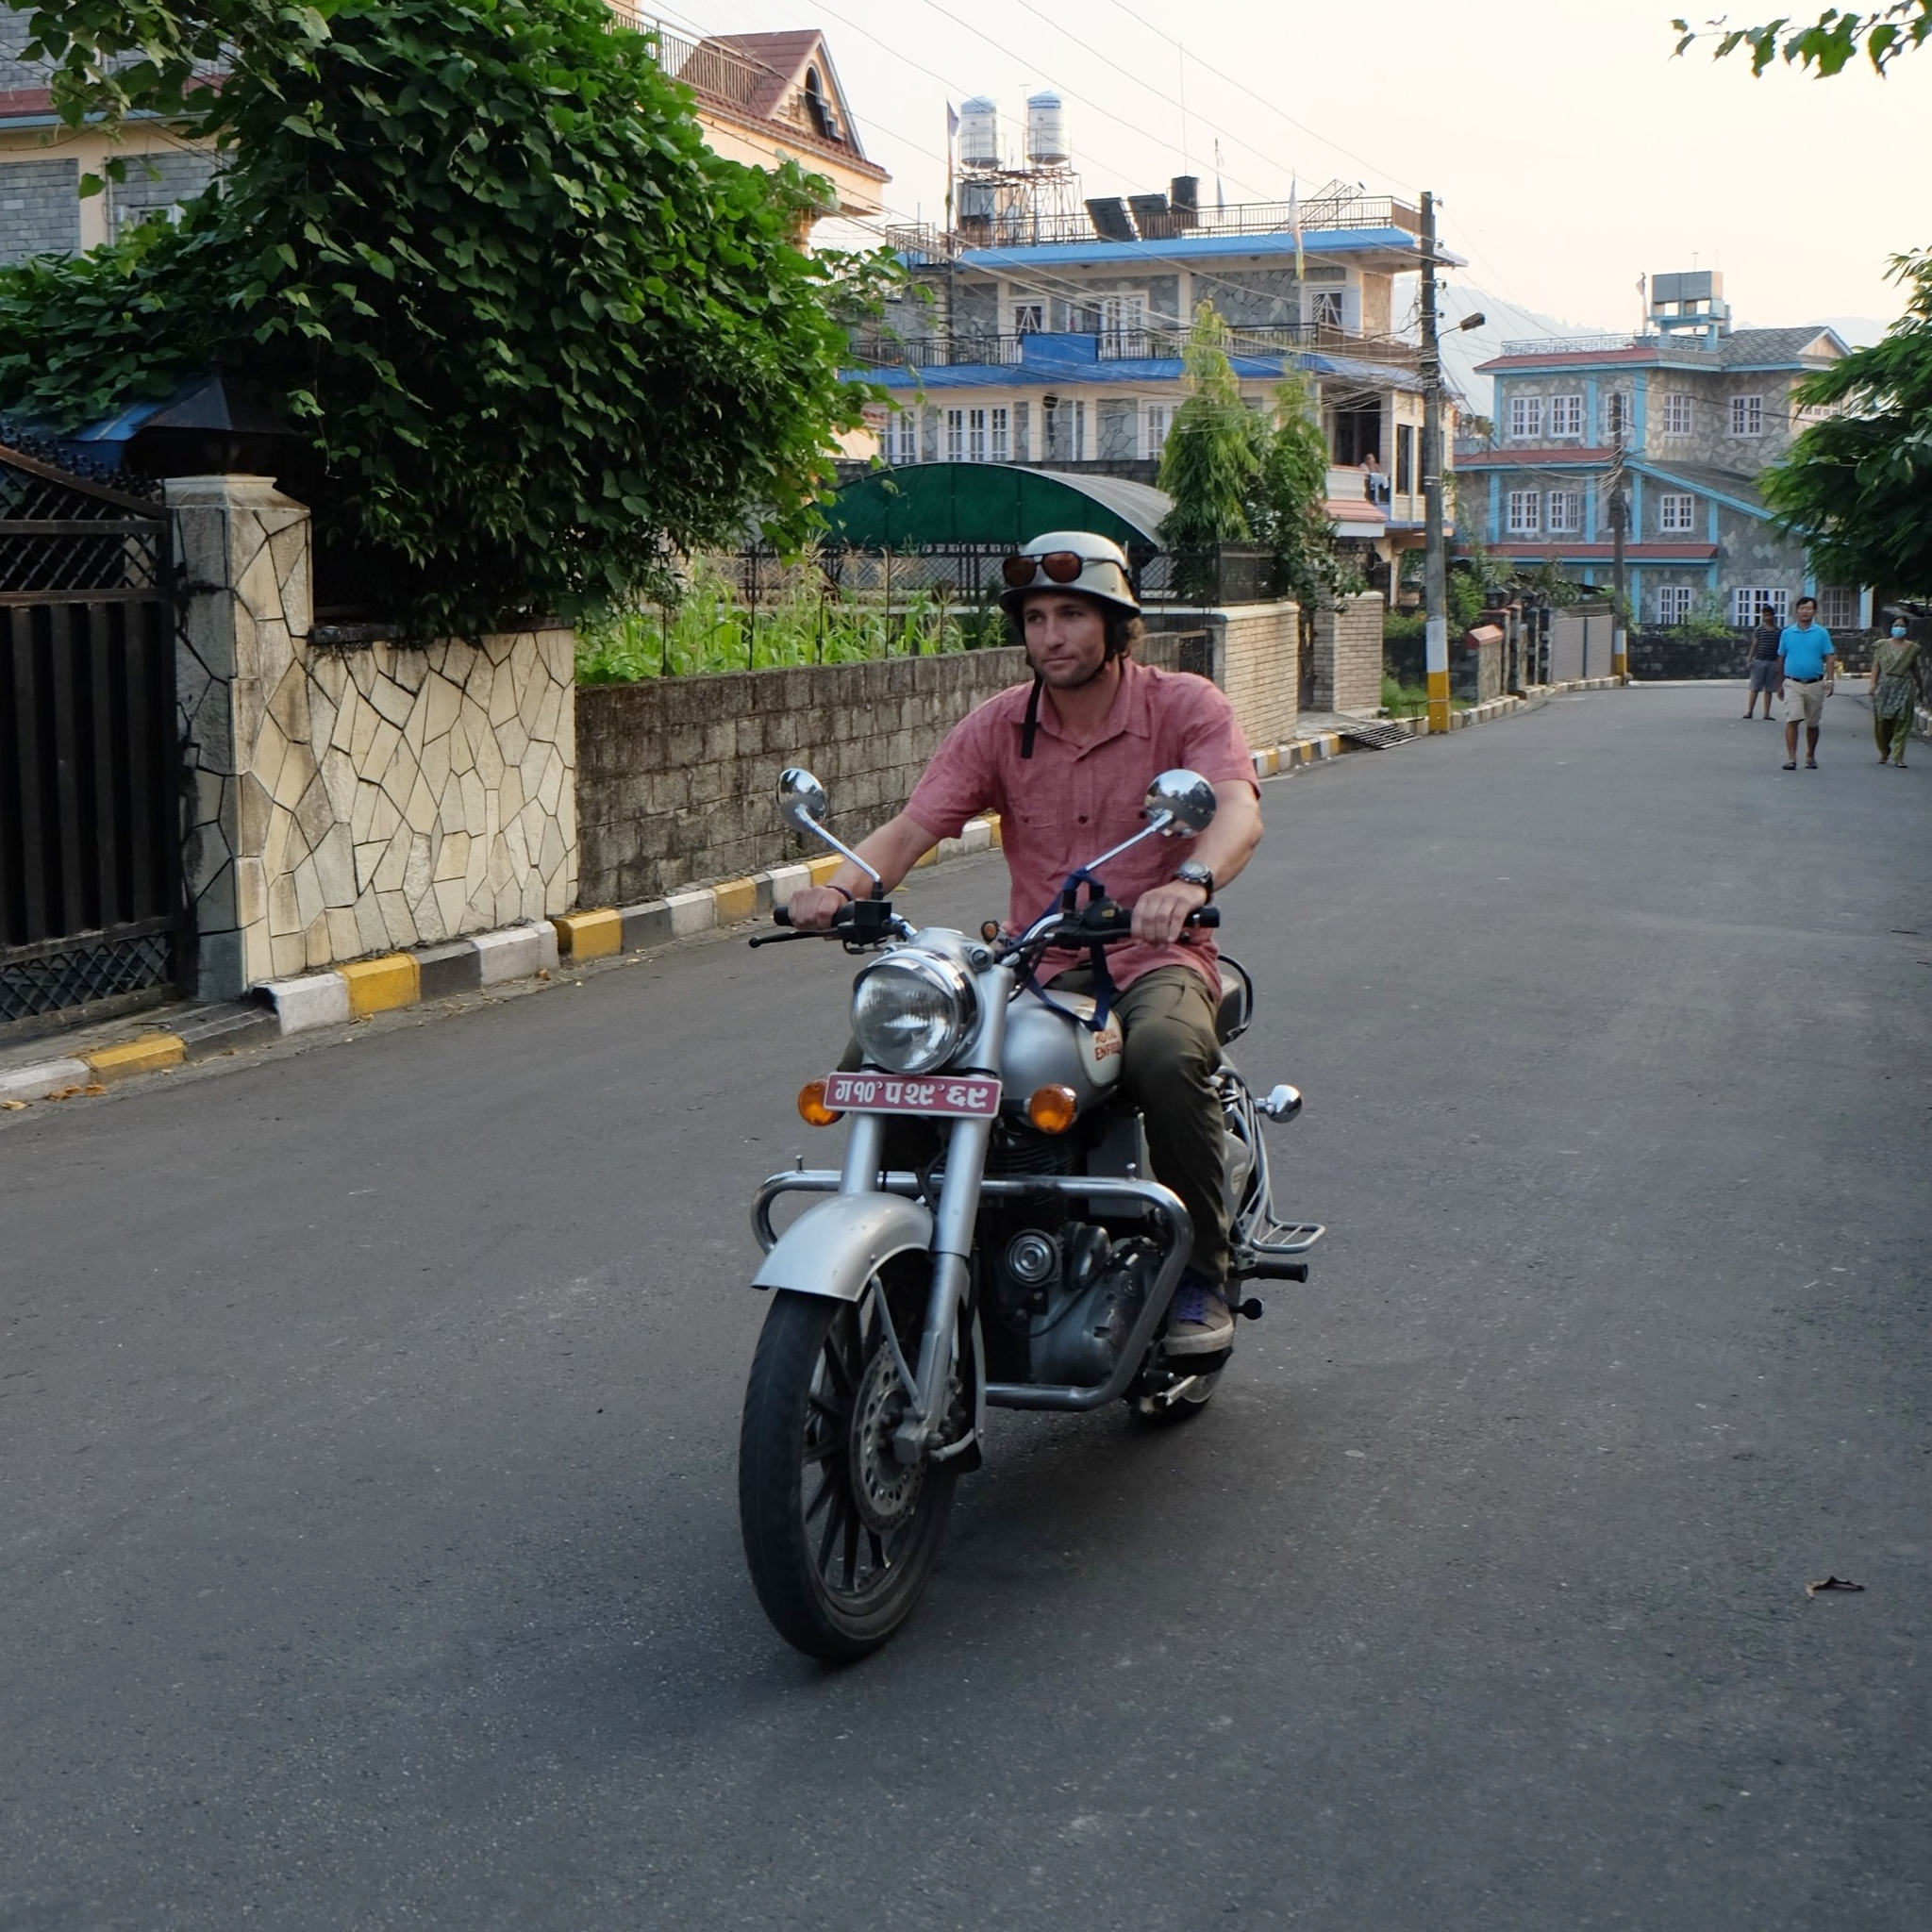 Kaspar and the Royal Enfield